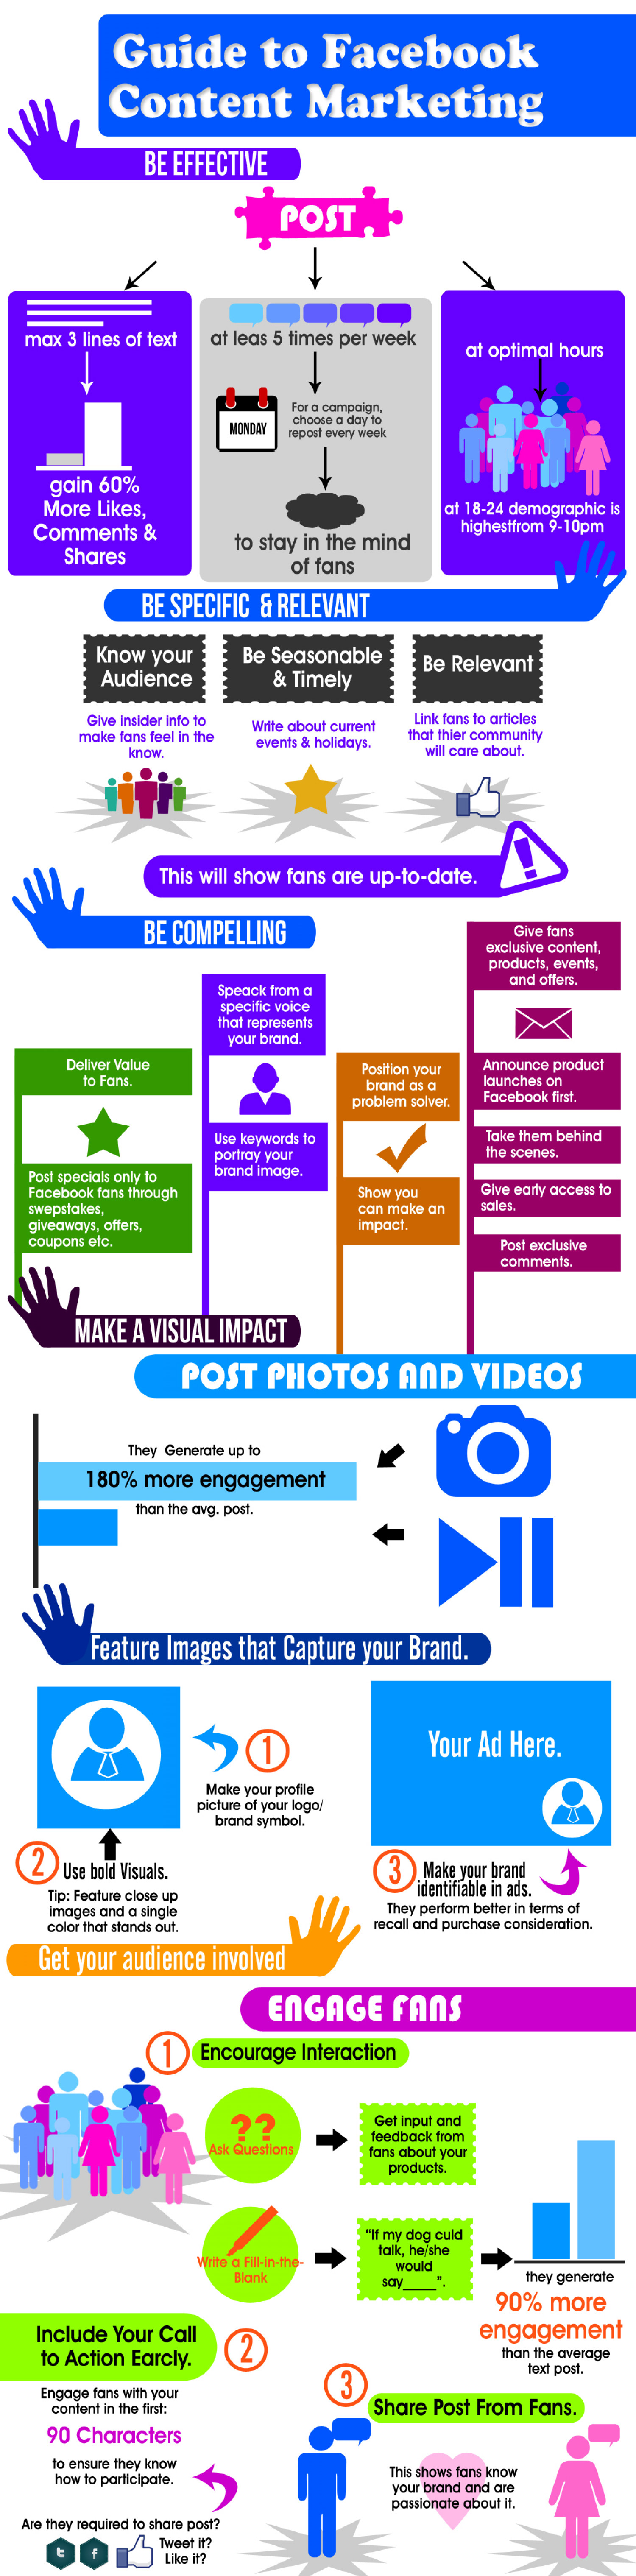 Guide to Facebook Content Marketing Infographic